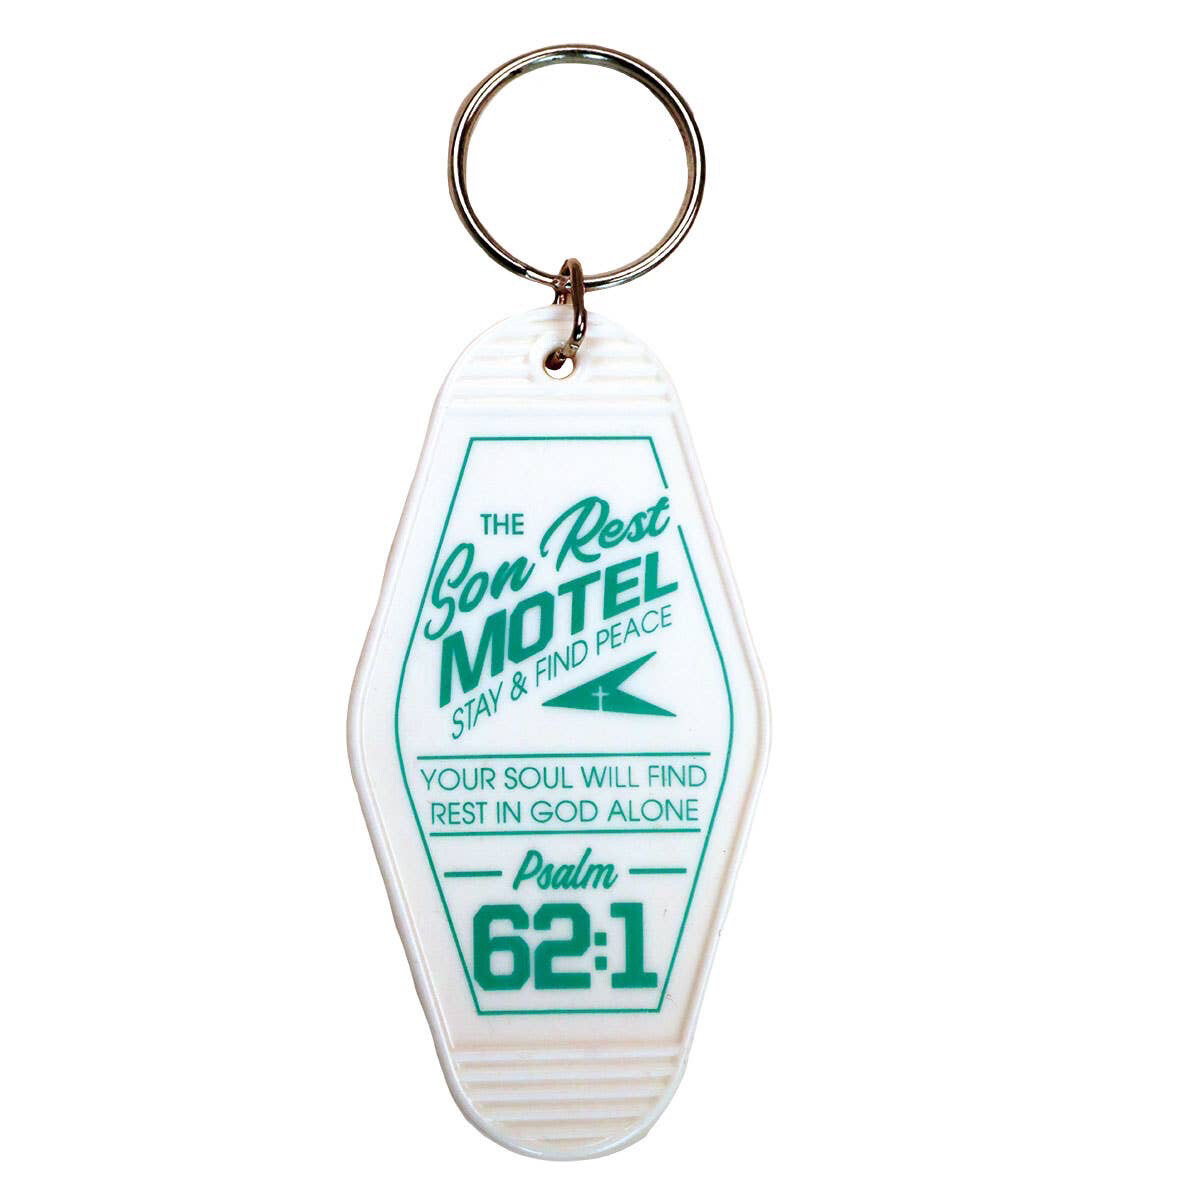 The Son Rest Motel Keychain